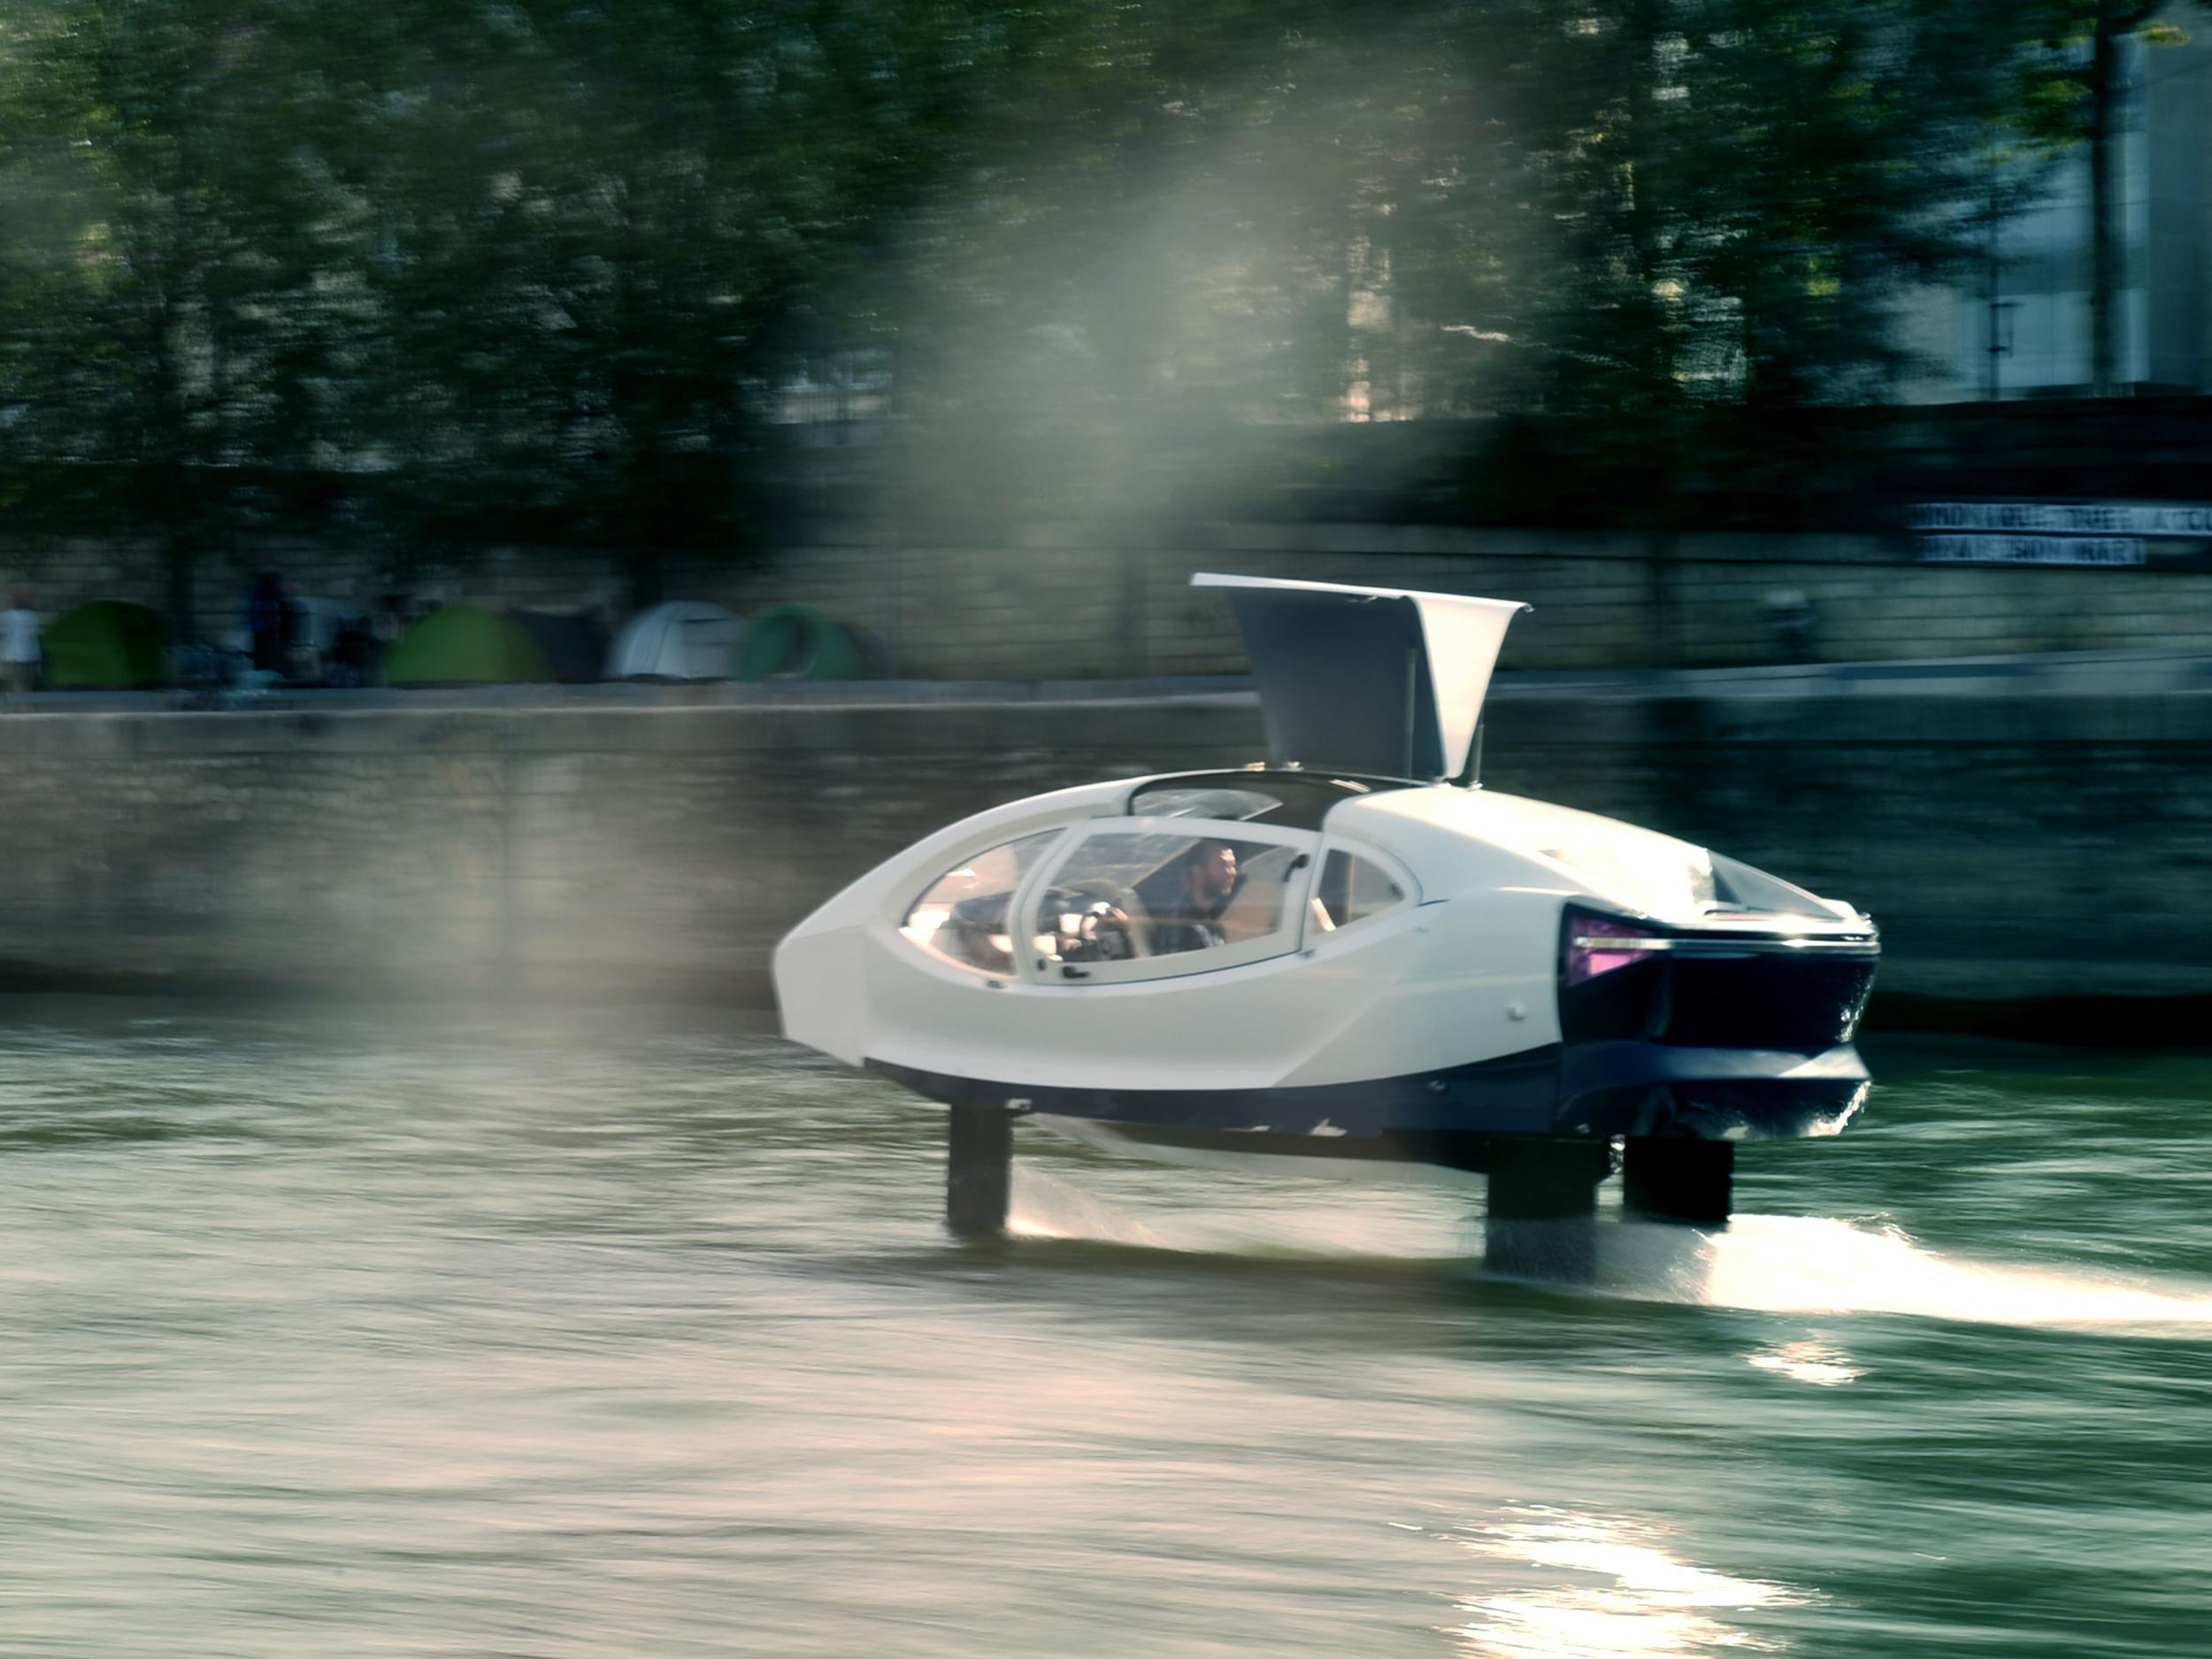 'Flying taxi' stopped by police in Paris